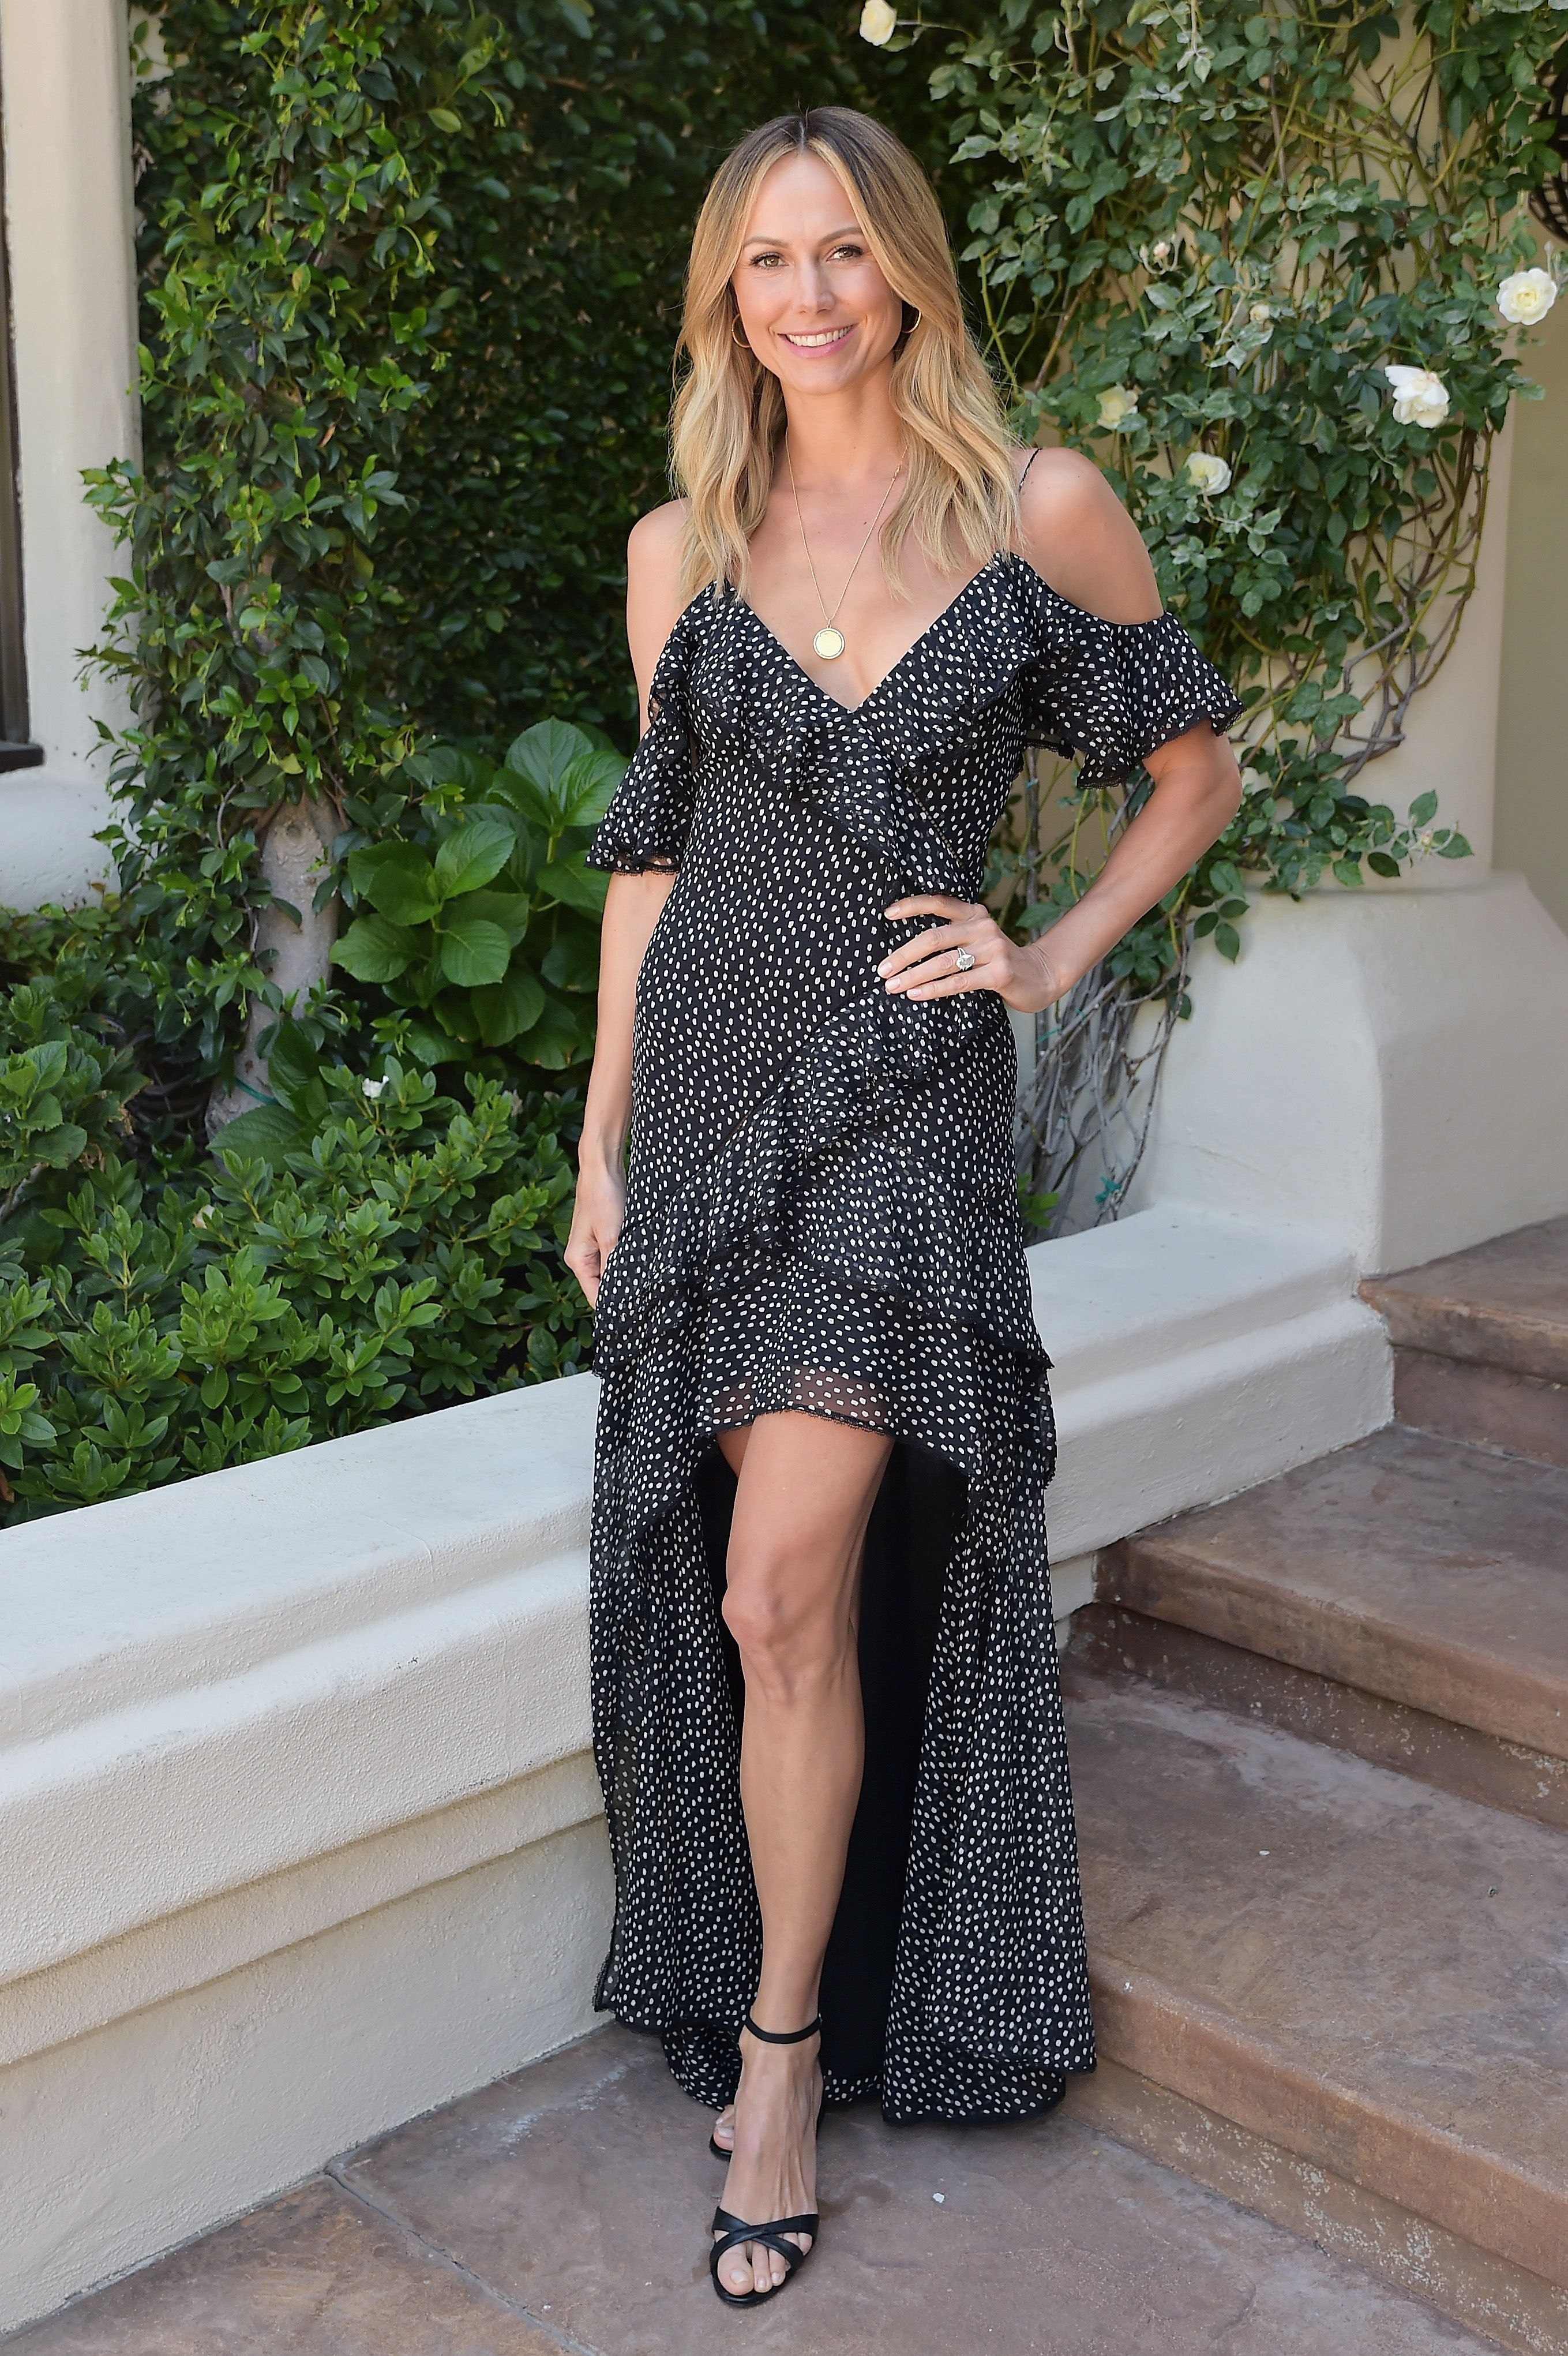 Stacy Keibler at Valentino's H.E.A.R.T. Annual Brunch in 2019 in Los Angeles | Source: Getty